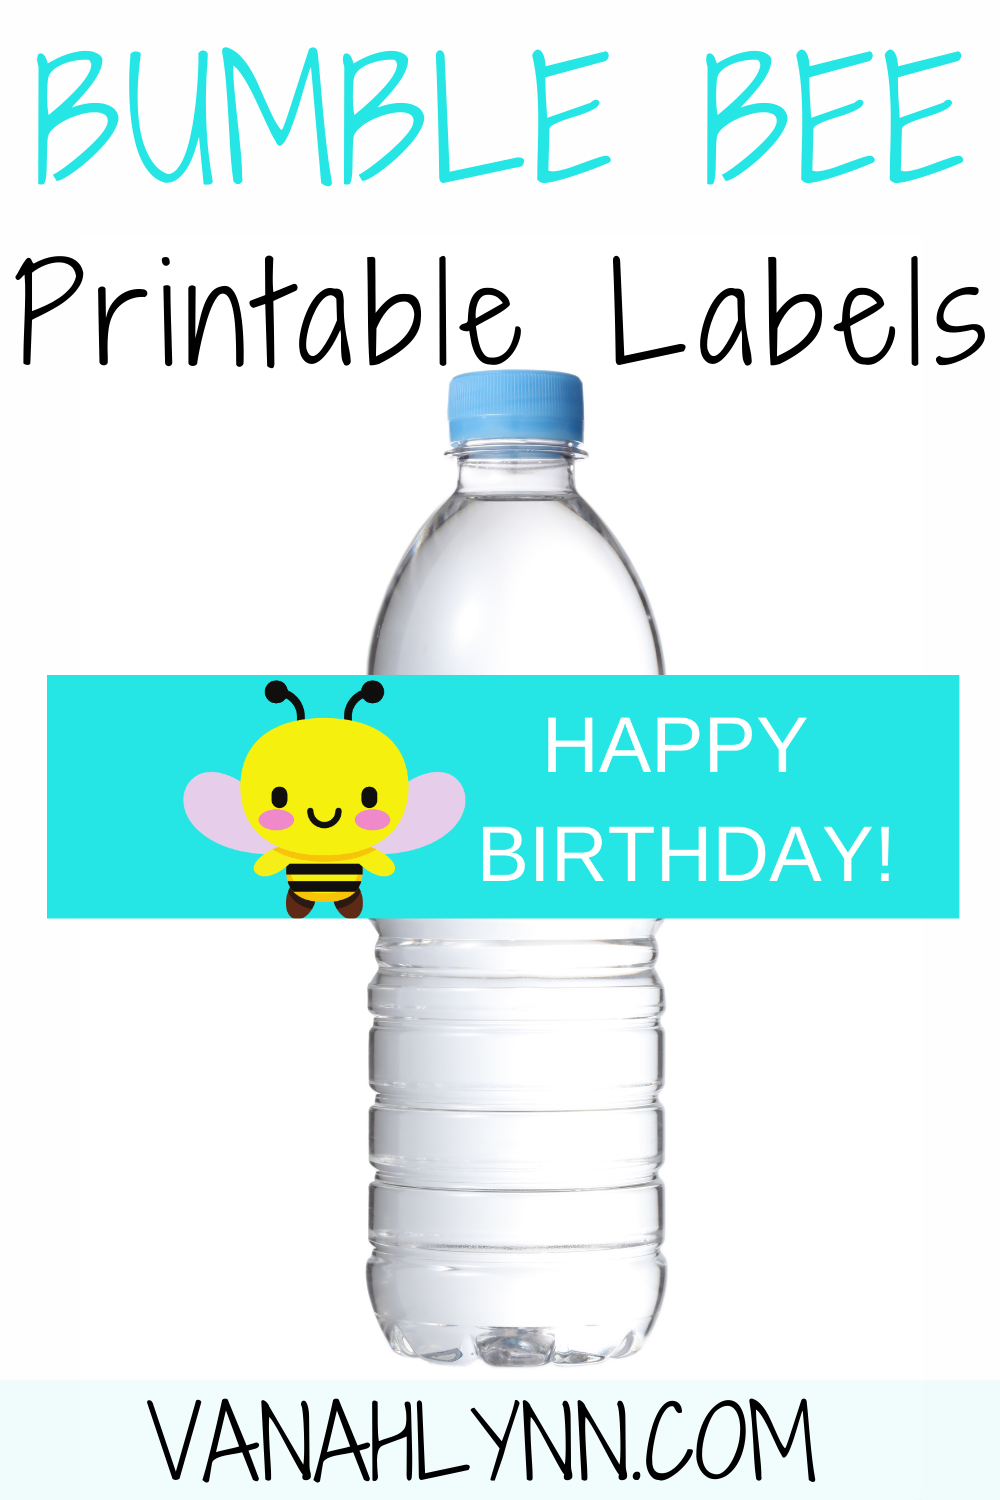 free download: bumble bee water bottle label for birthday party